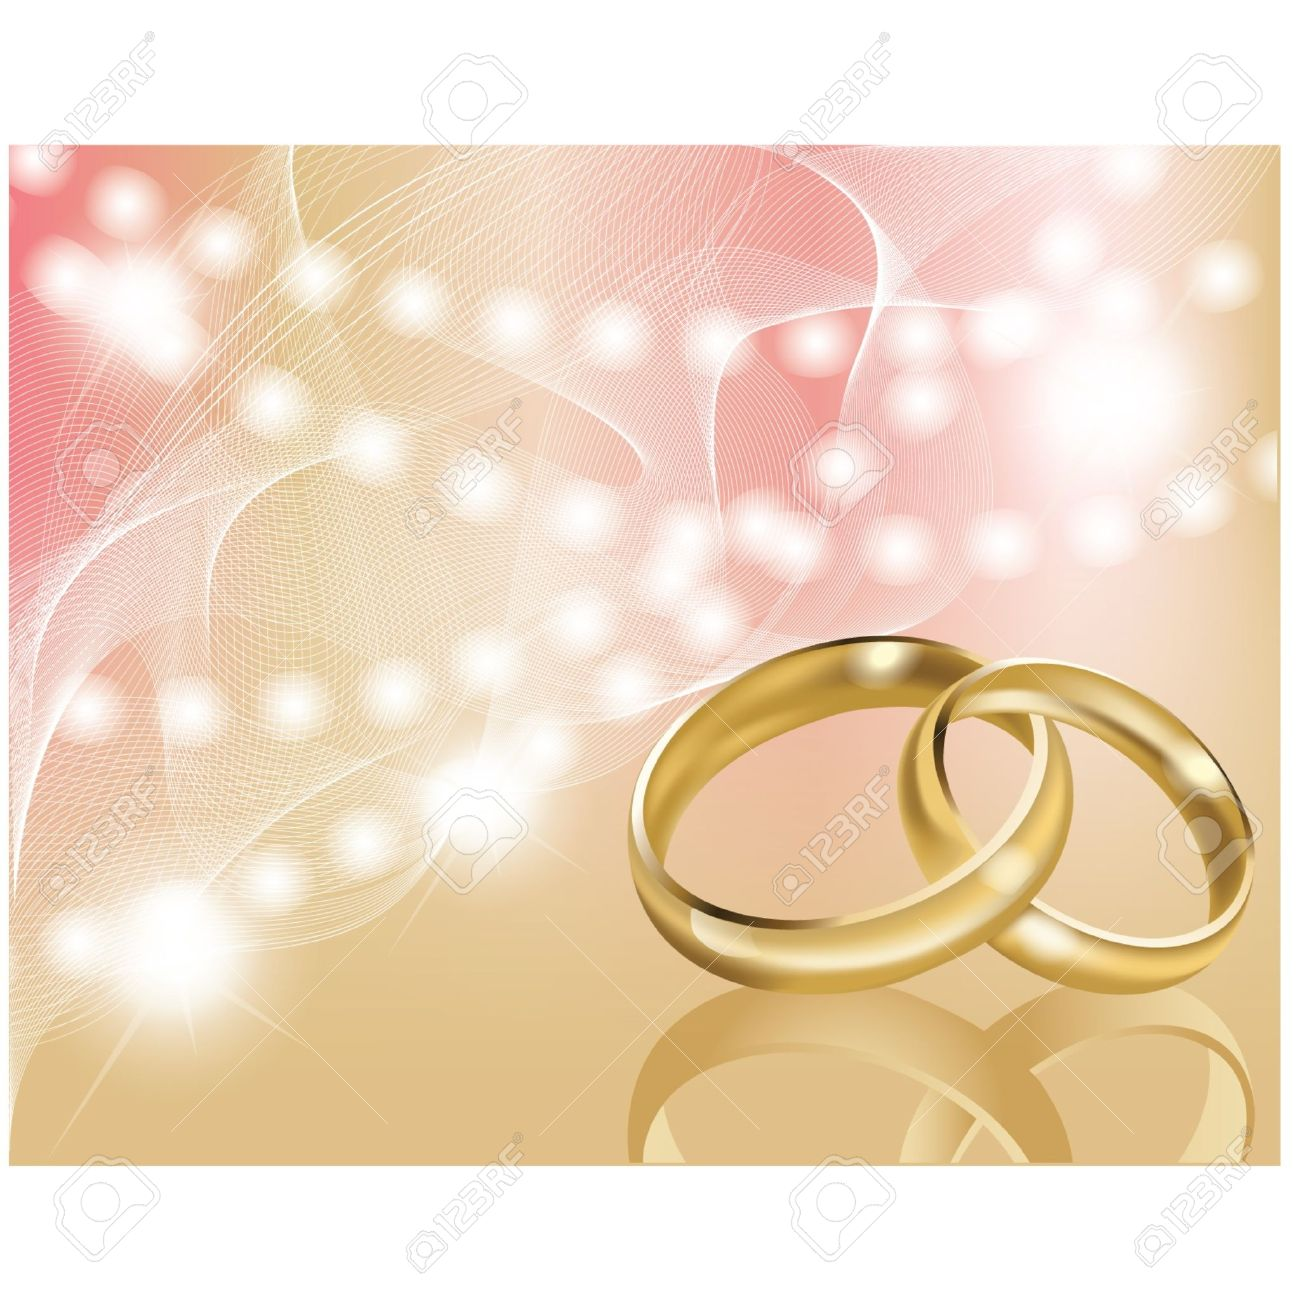 two wedding ring with abstract background royalty free cliparts